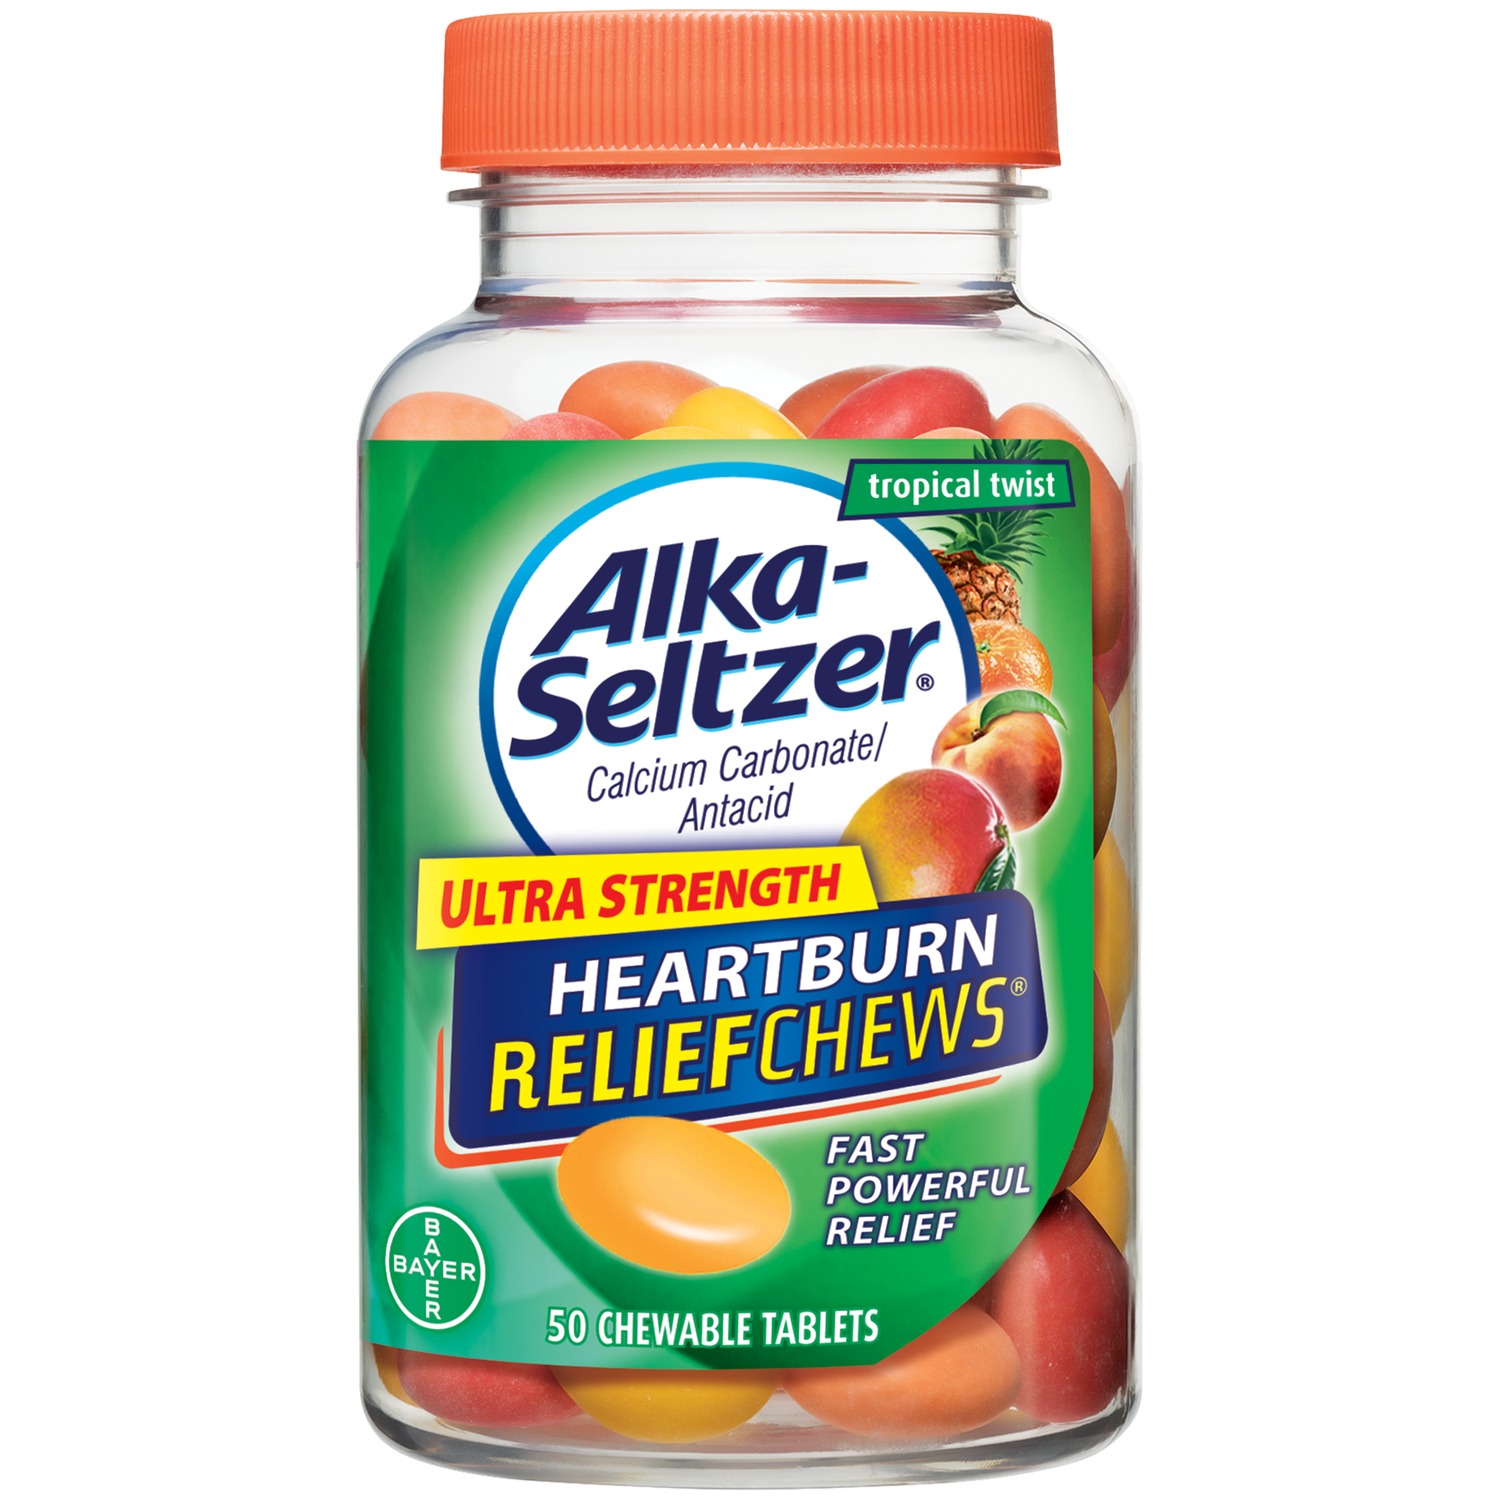 Alka-Seltzer Ultra Strength Heartburn Relief Chews Tropical Twist, 50 Count